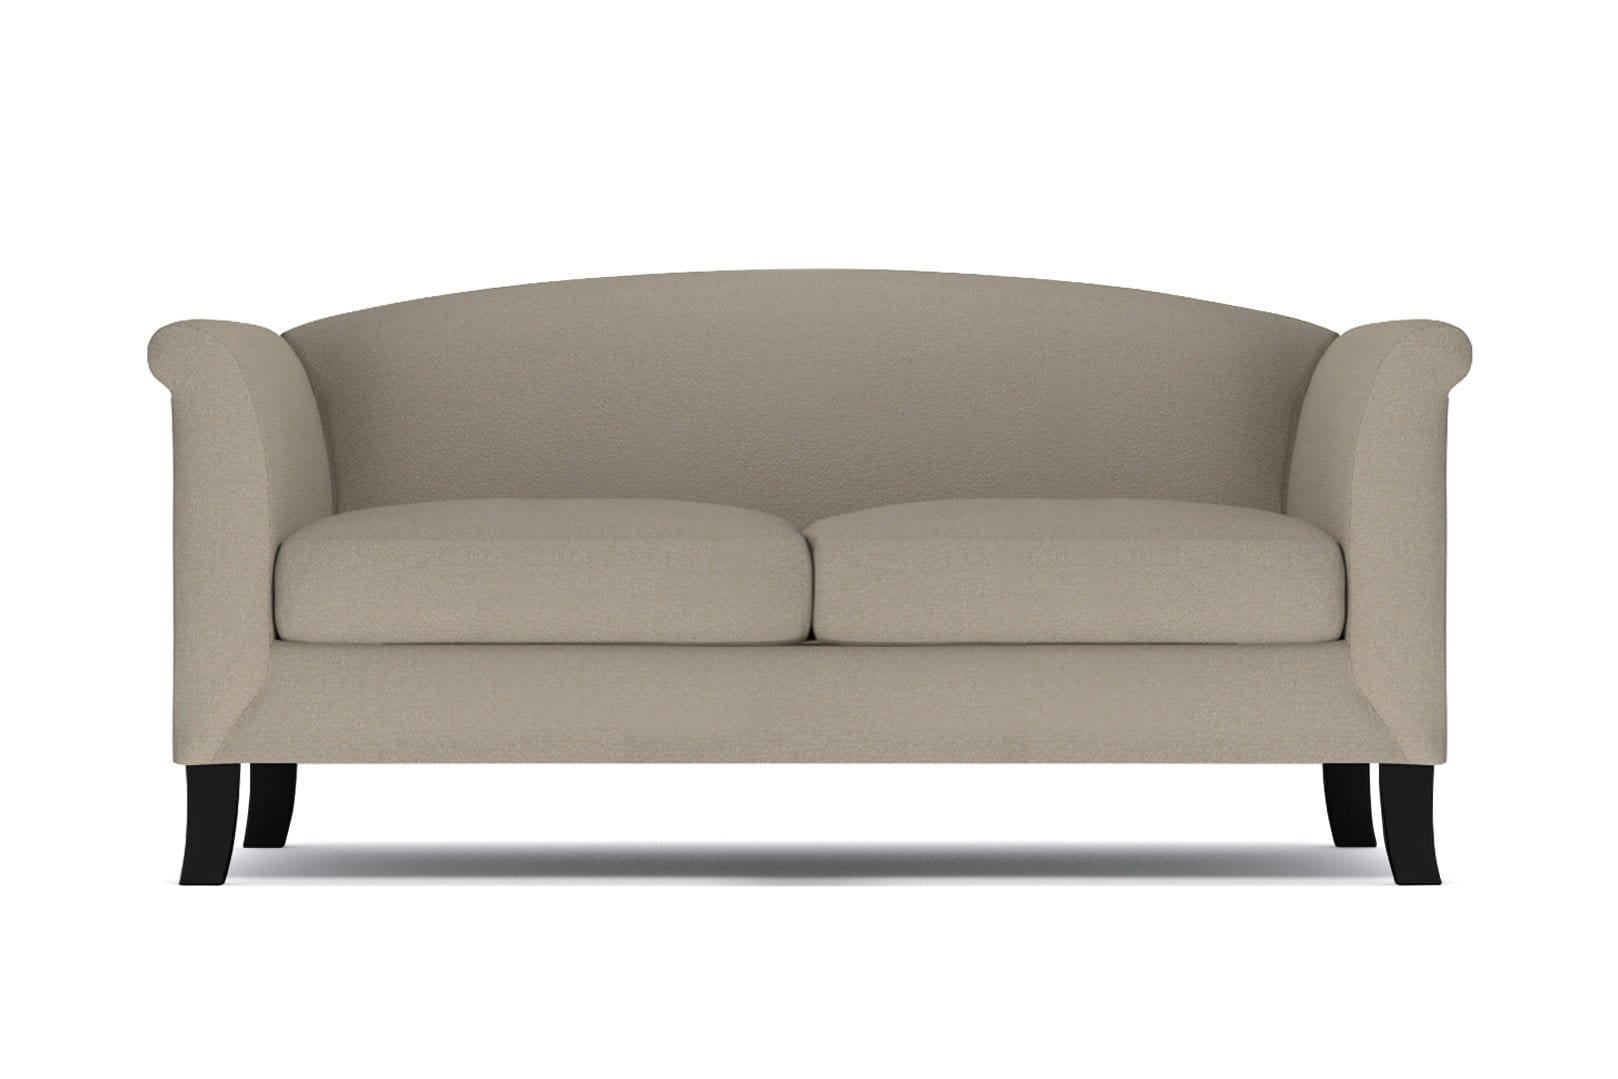 Albright_Apartment_Size_Sofa__Taupe___Small_Space_Modern_Couch_Made_in_the_USA__Sold_by_Apt2B